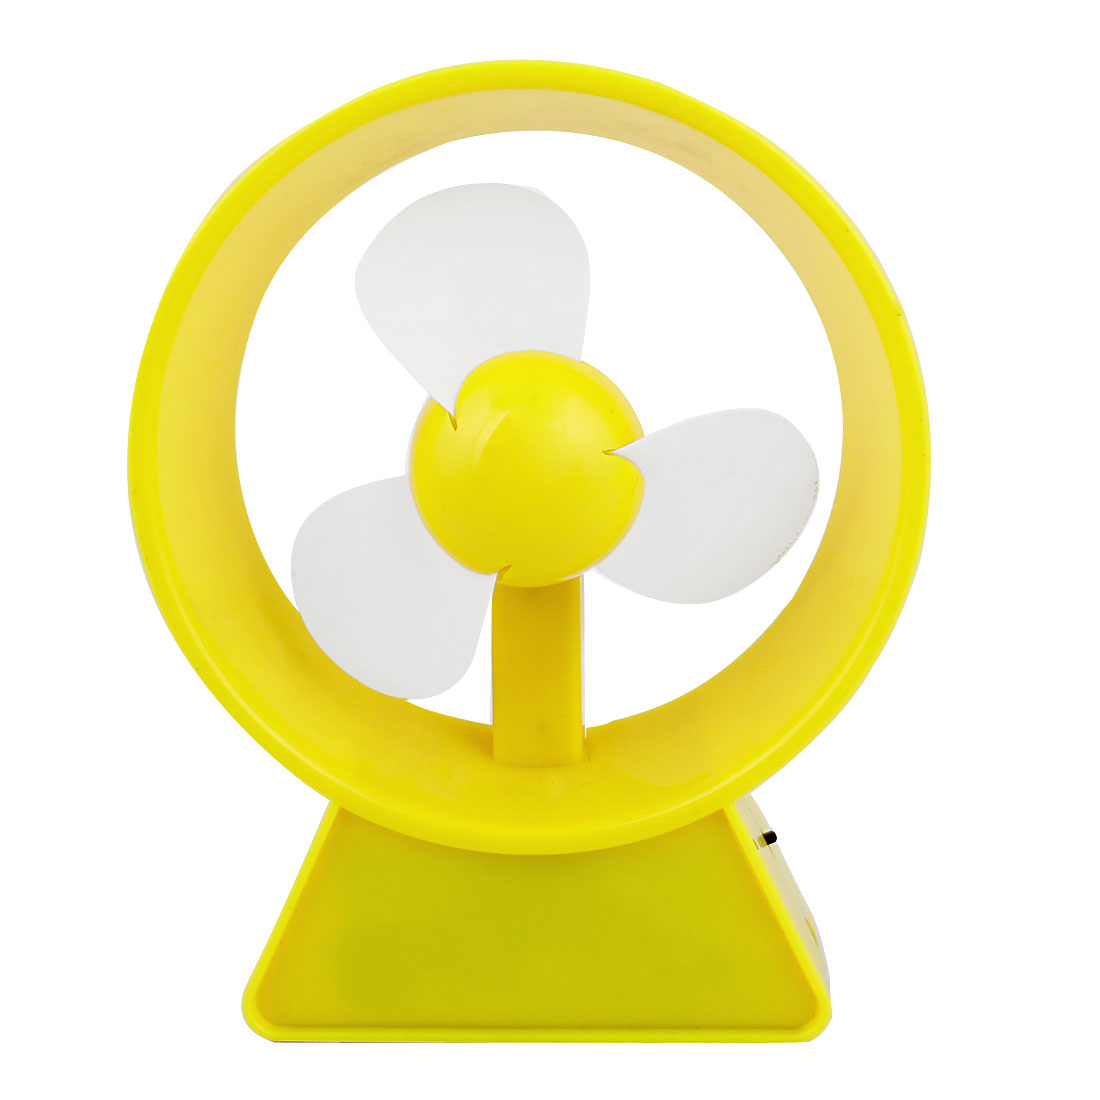 Handy Desktop Notebook Yellow Plastic Round Frame USB Battery Mini Fan